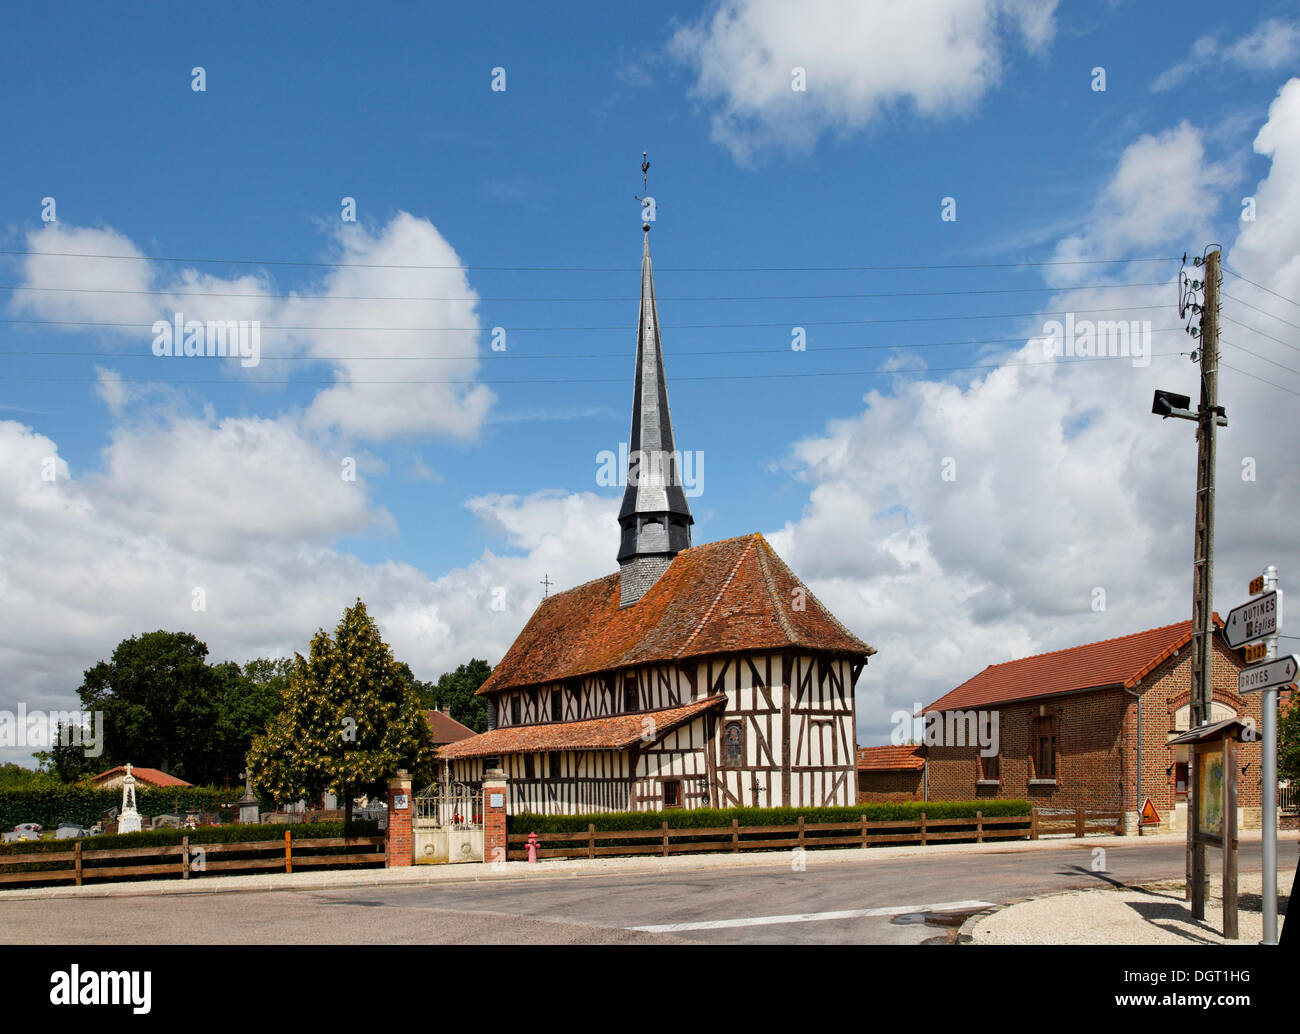 Half-timbered church of Bailly-le-Franc, Via Francigena, Montier-en-Der, department of Haute-Marne, Champagne-Ardenne region - Stock Image